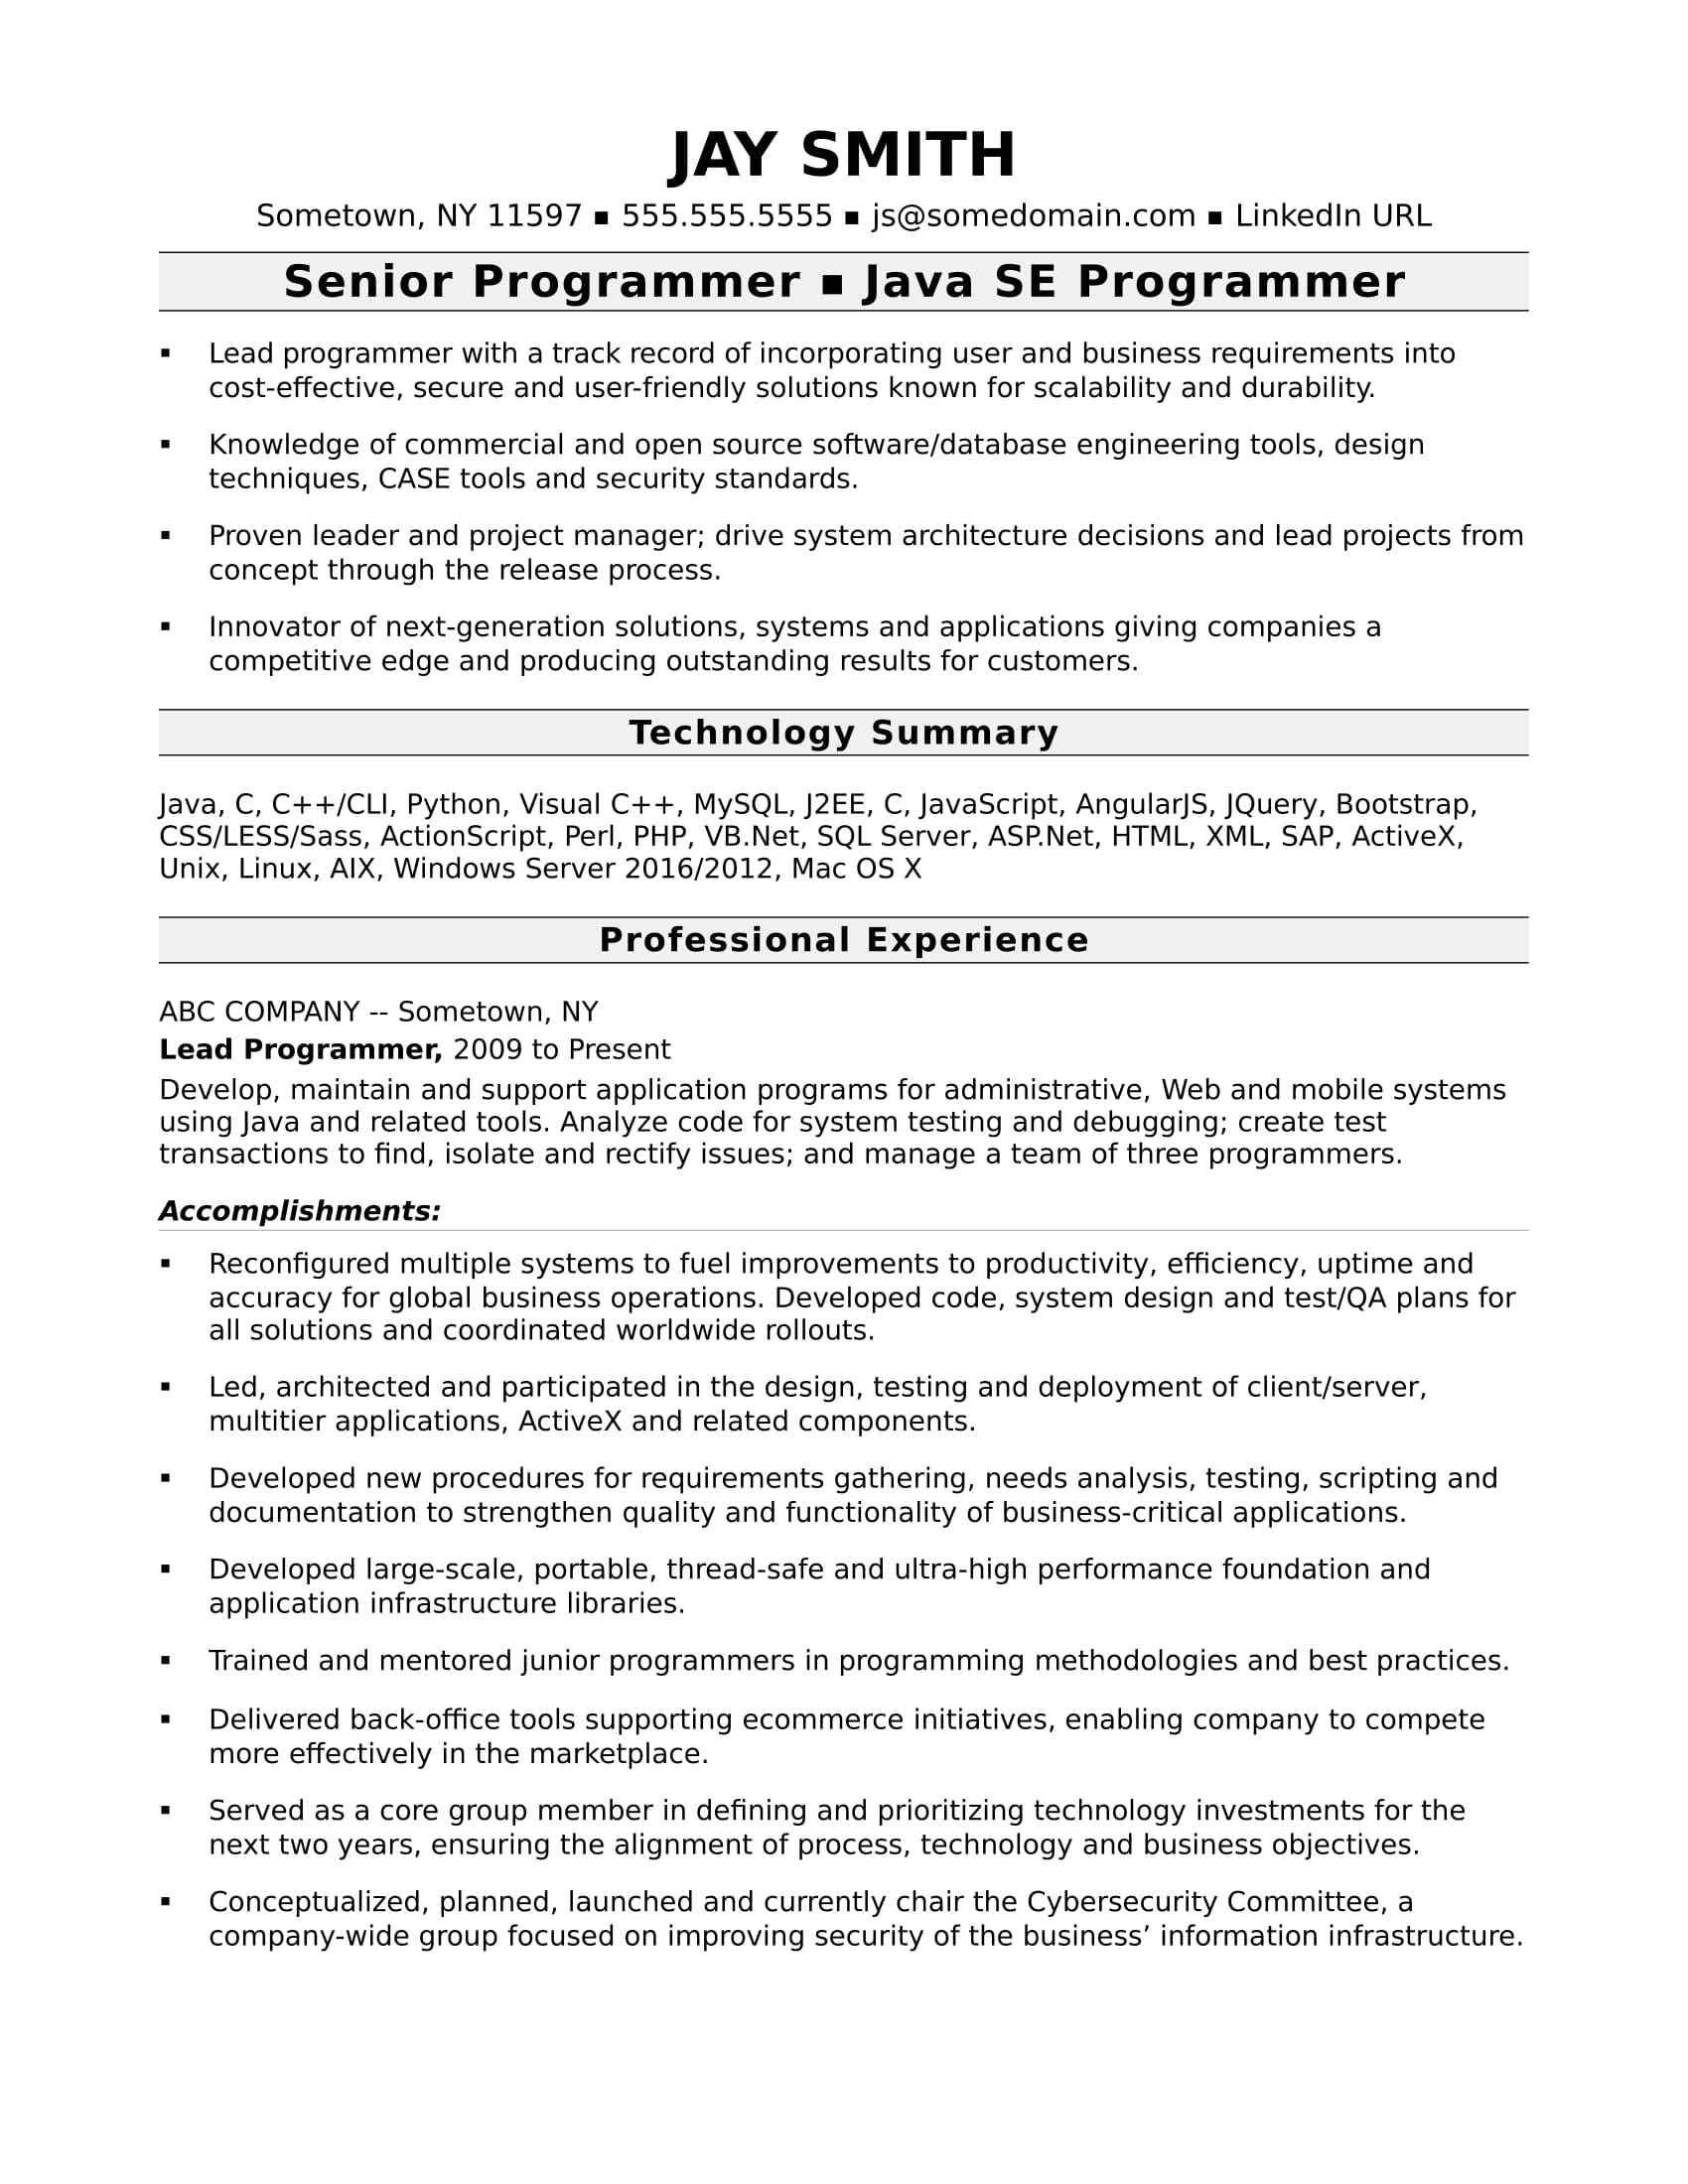 programmer resume template monster computer experienced dialysis technician commissioning Resume Computer Programmer Resume Template